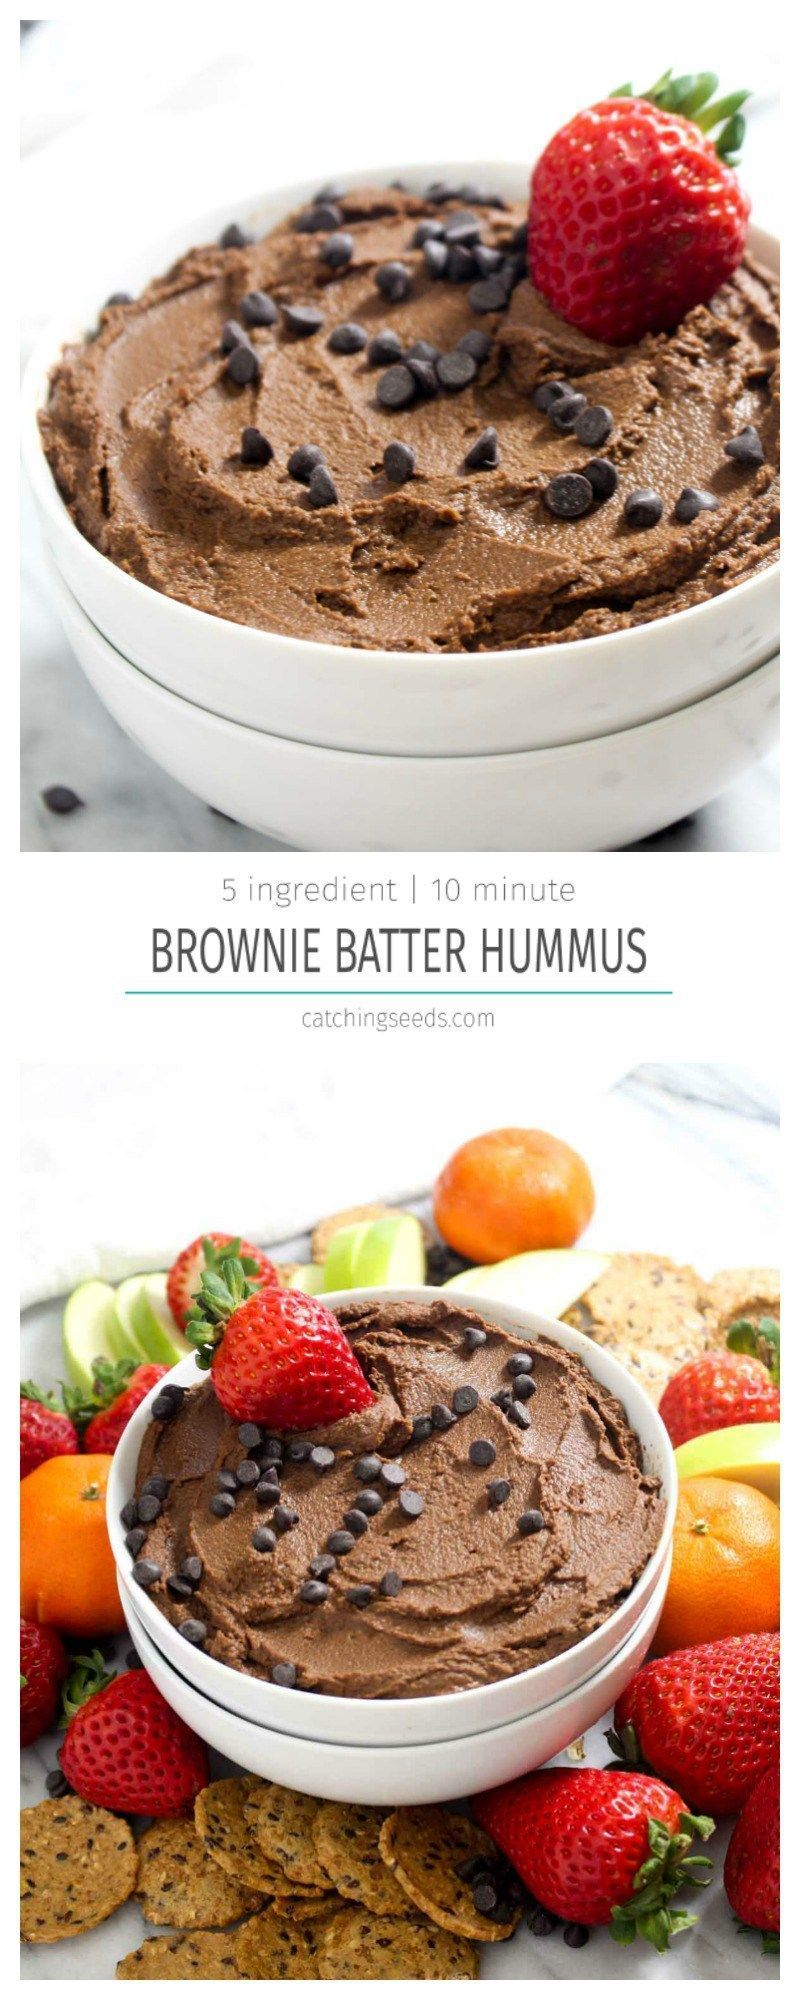 Batter Hummus This Chocolate Brownie Batter Hummus is the perfect healthy chocolate treat! This recipe requires just 5 everyday ingredients and can be made in 10 minutes with 1 simple step! | This Chocolate Brownie Batter Hummus is the perfect healthy chocolate treat! This recipe requires just 5 everyday ingredients and can be made...